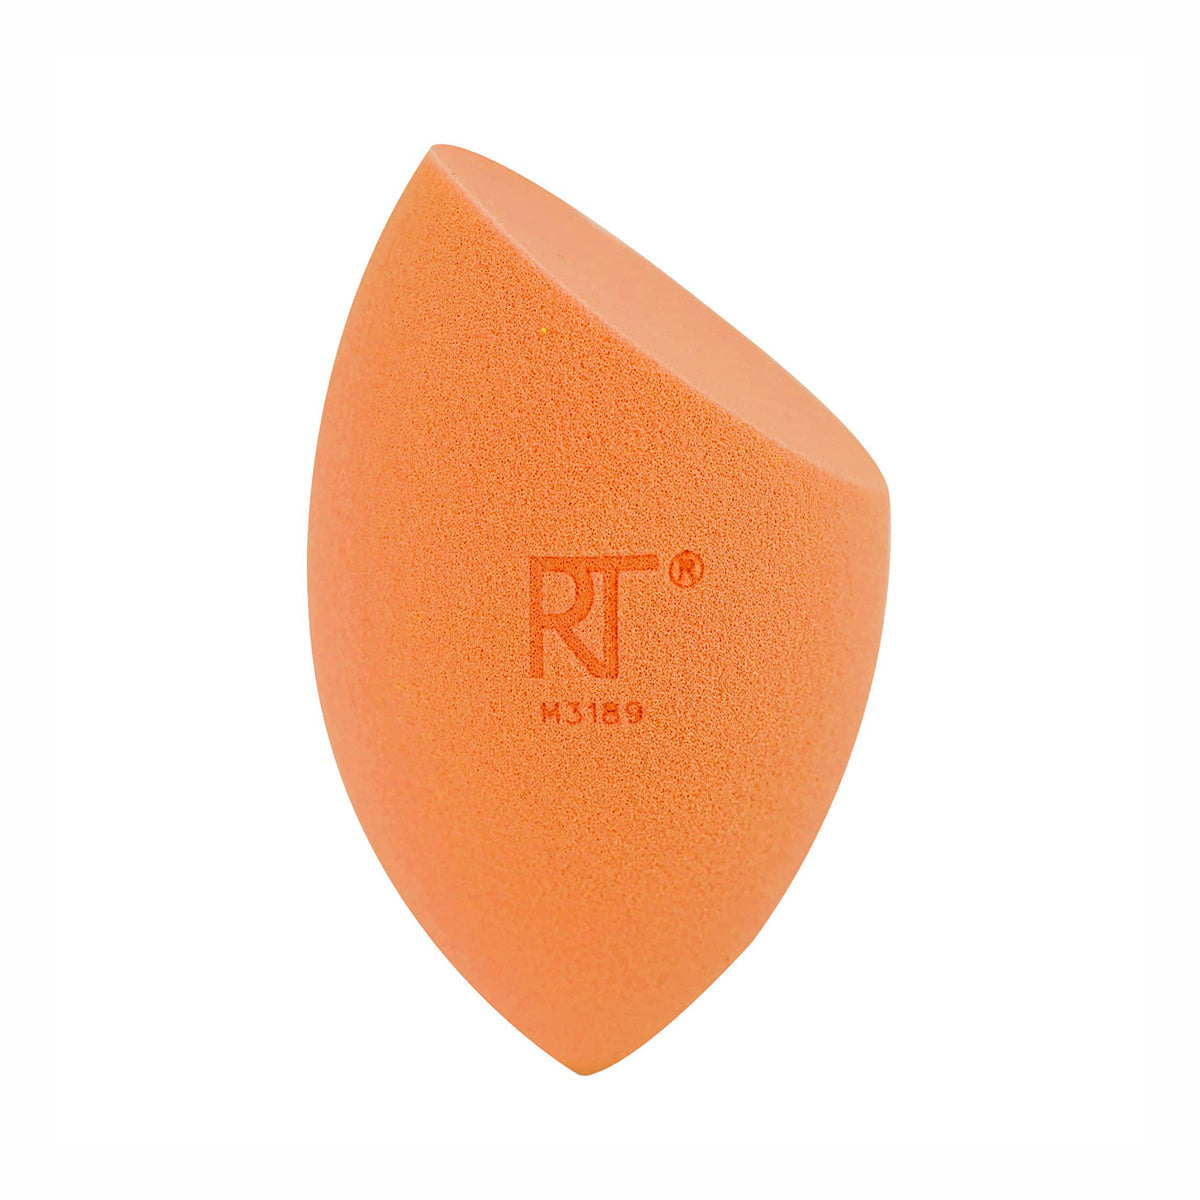 Real Technique MIRACLE COMPLEXION SPONGE